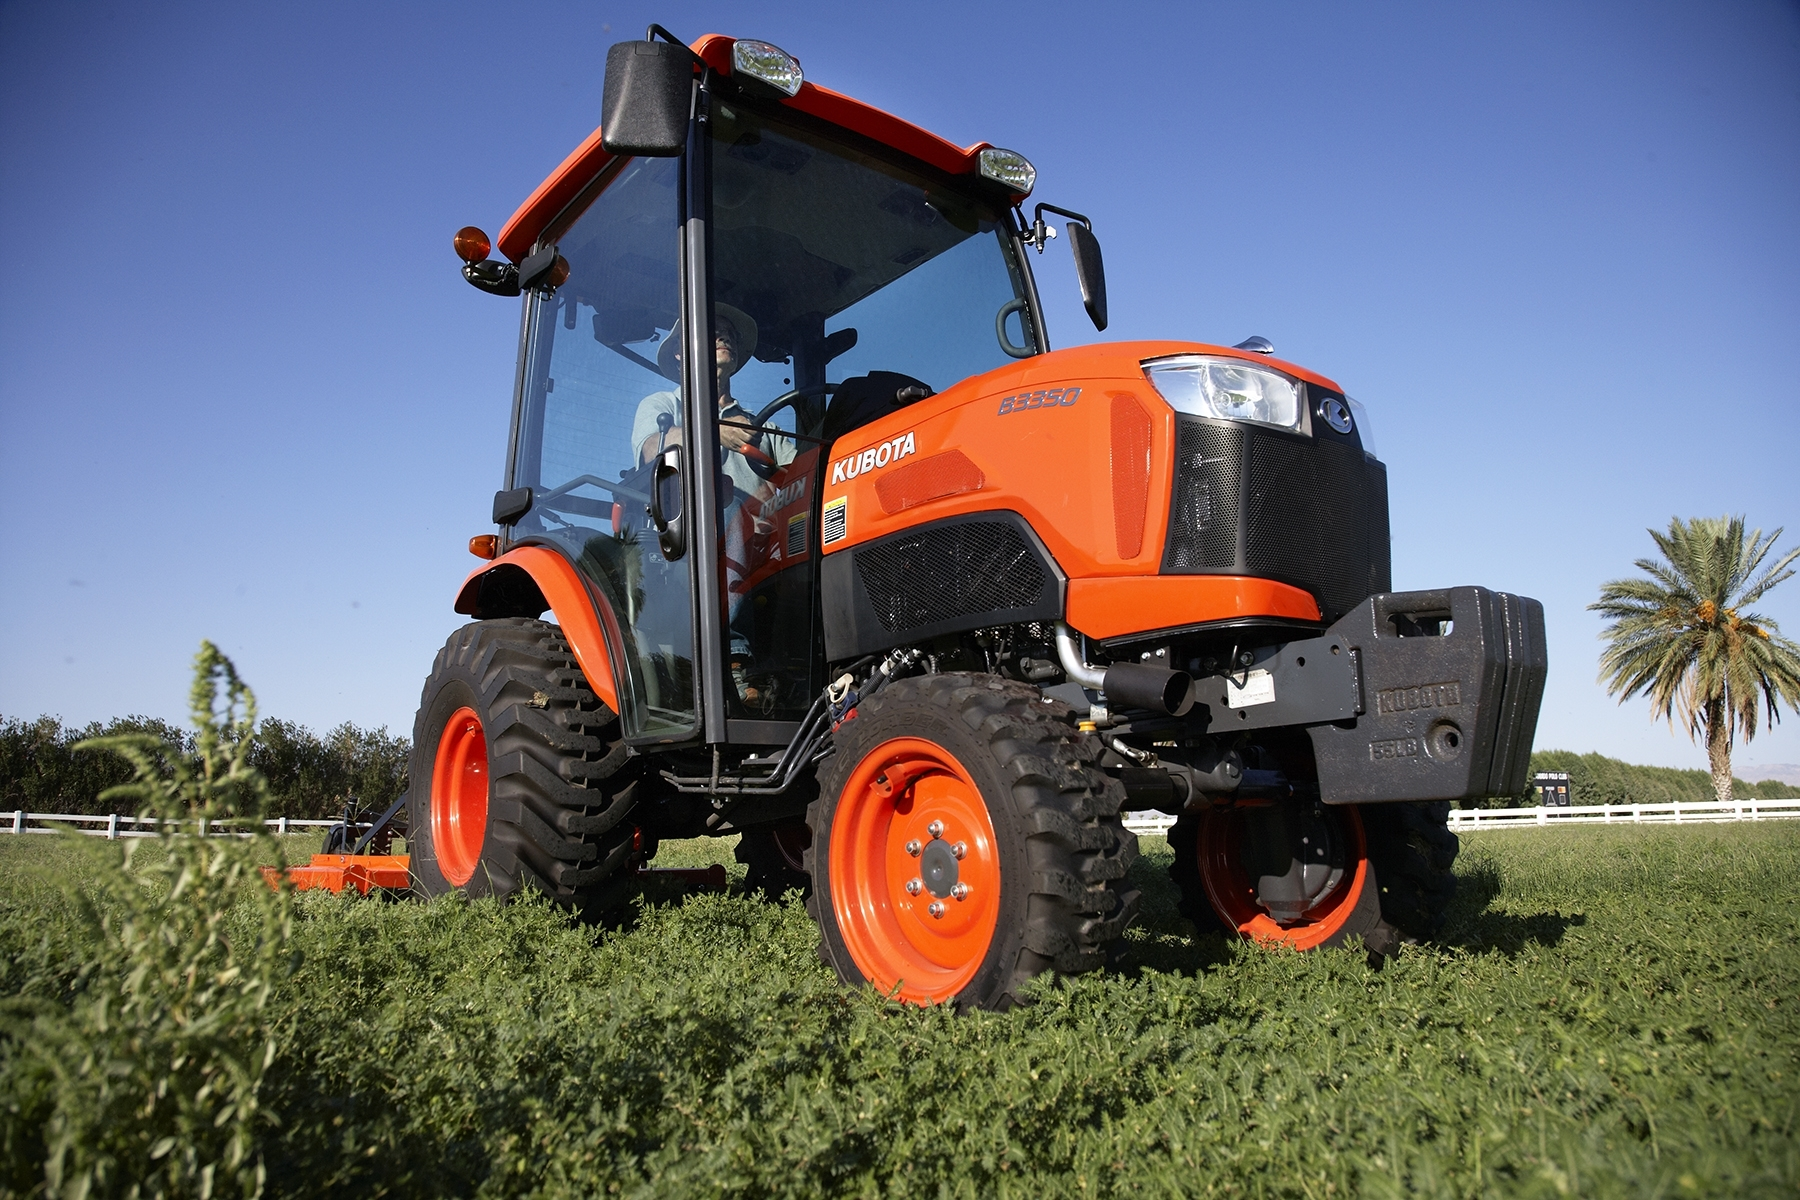 Electrical Wiring Diagram Kubota B2650 Trusted Diagrams Ferrari Unveils New B50 Series Tractors With Factory Integrated Cabs